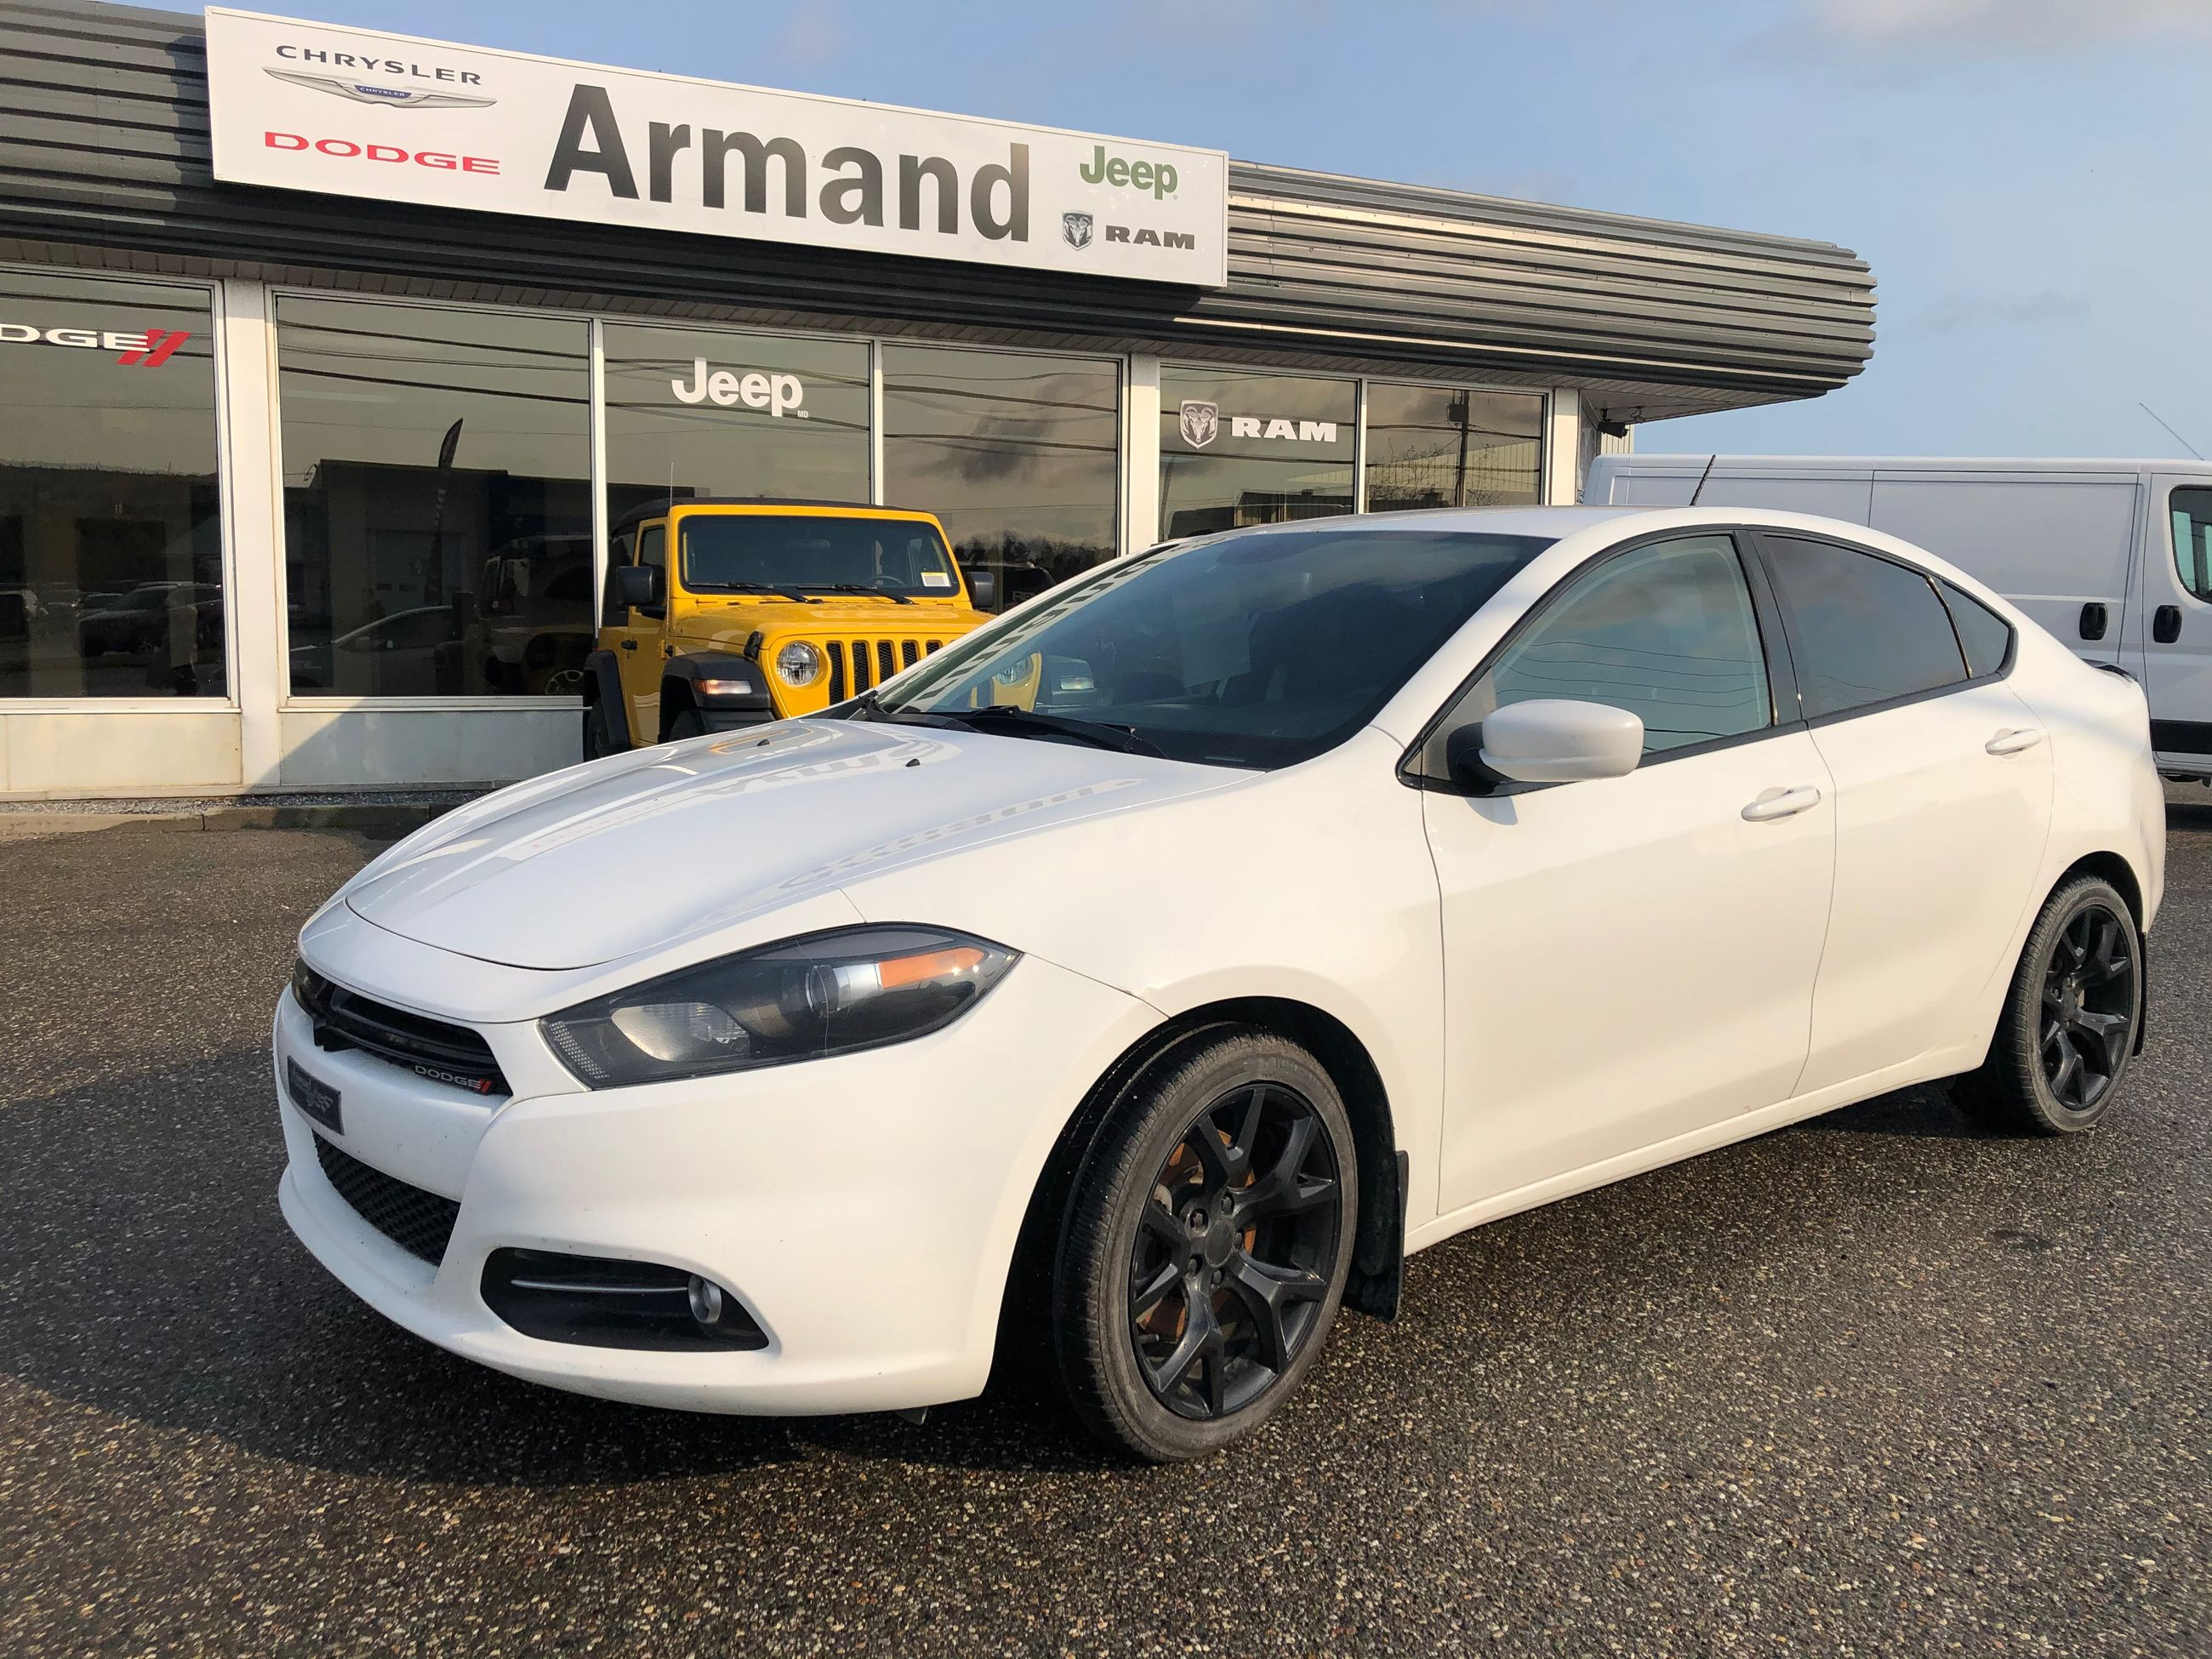 Armand Chrysler Dodge Jeep Ram In Carleton 2013 Dodge Dart Sxt 2047c